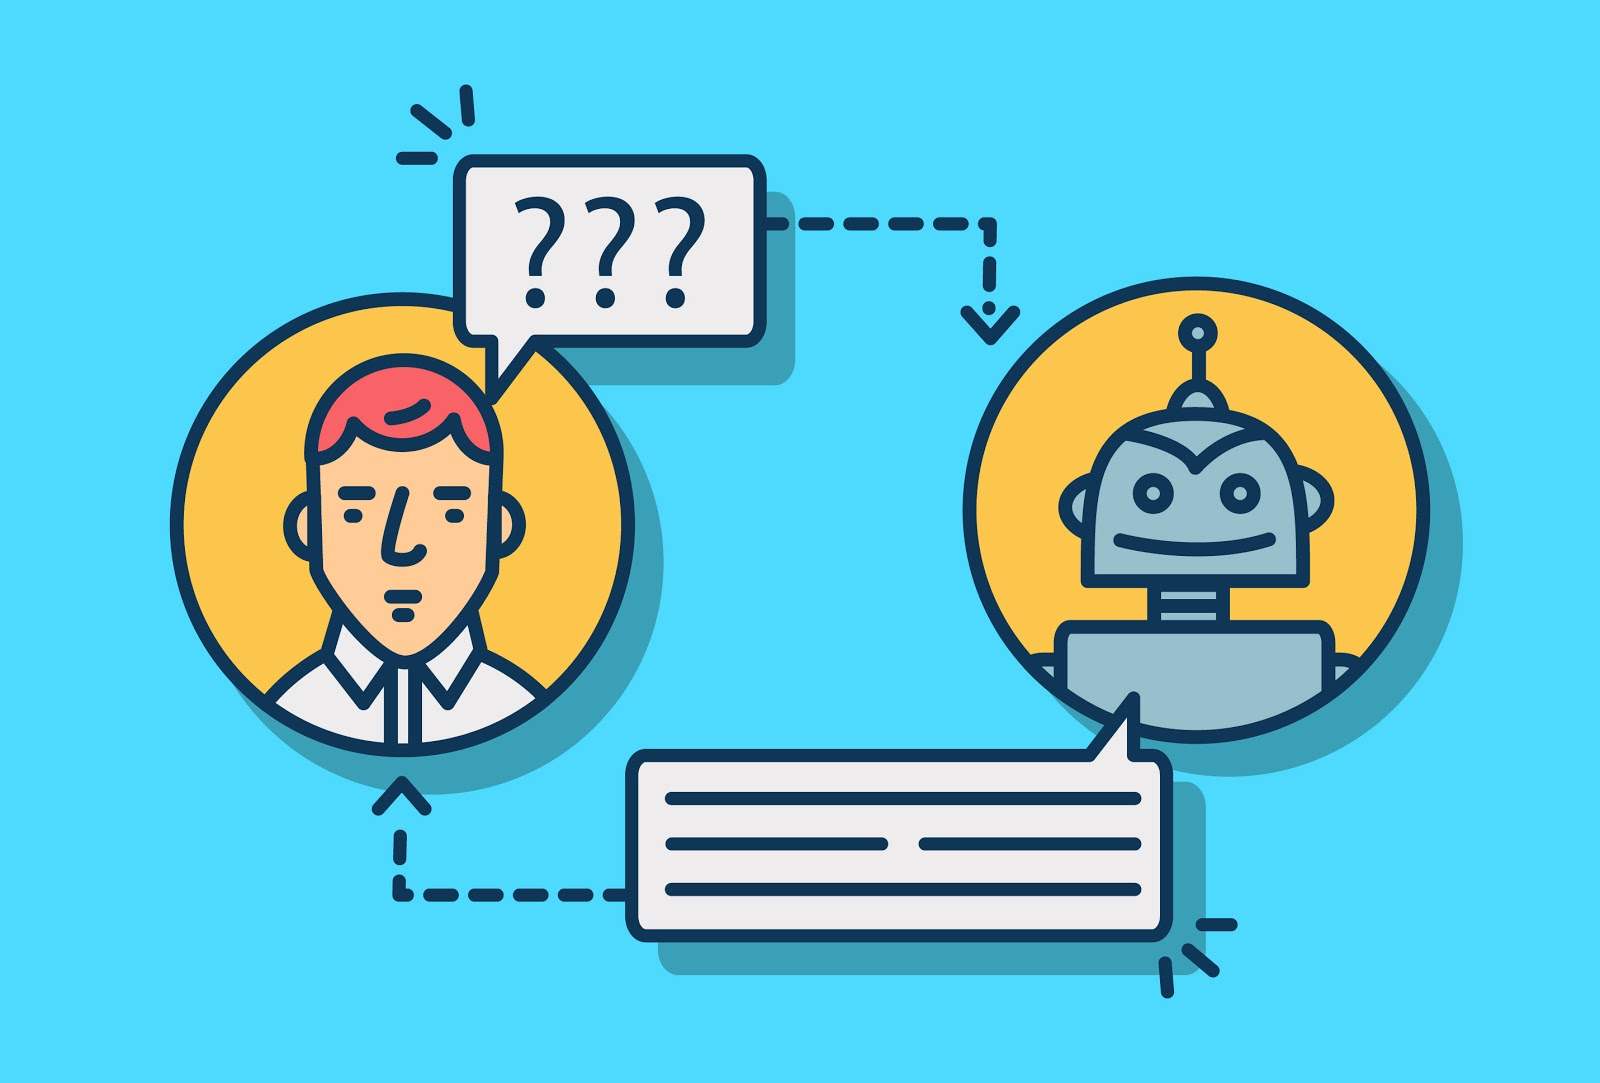 Graphic of person and robot chatting by speech bubbles